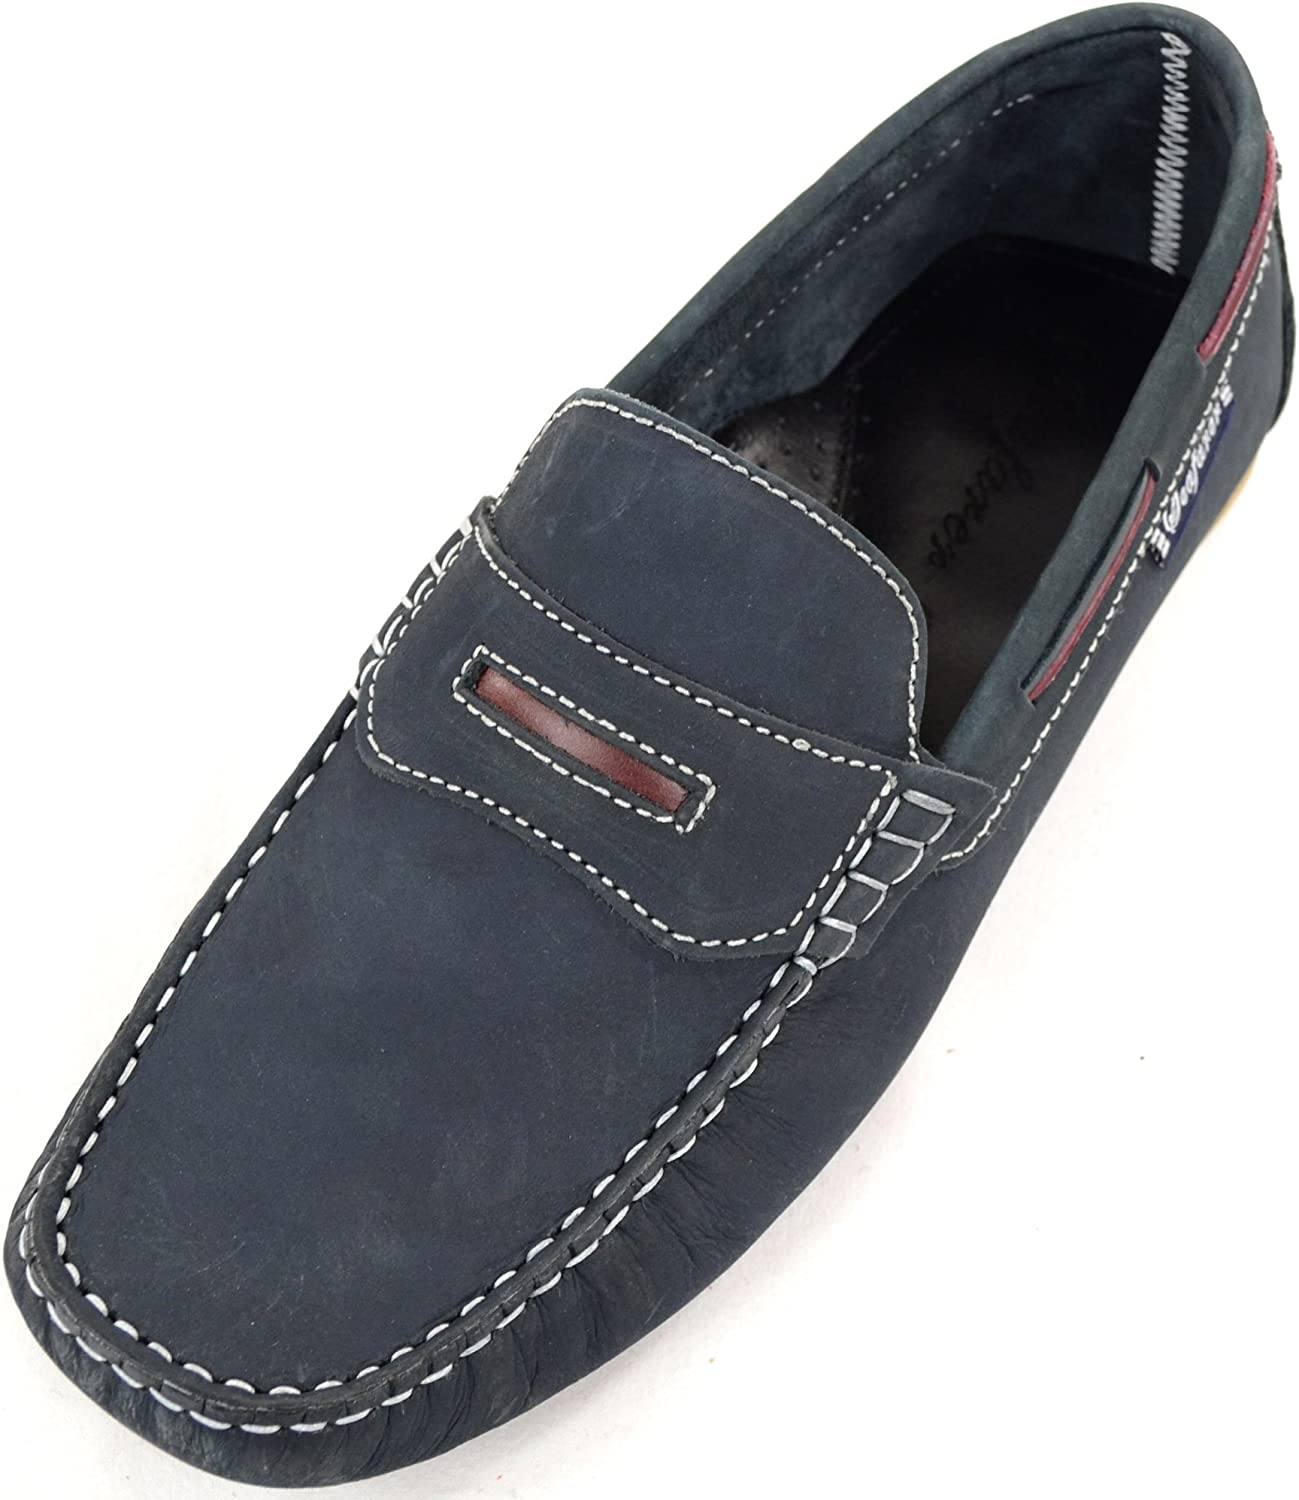 SNUGRUGS Mens Leather Casual//Formal Slip On Boat//Deck Loafer//Moccasin Shoes